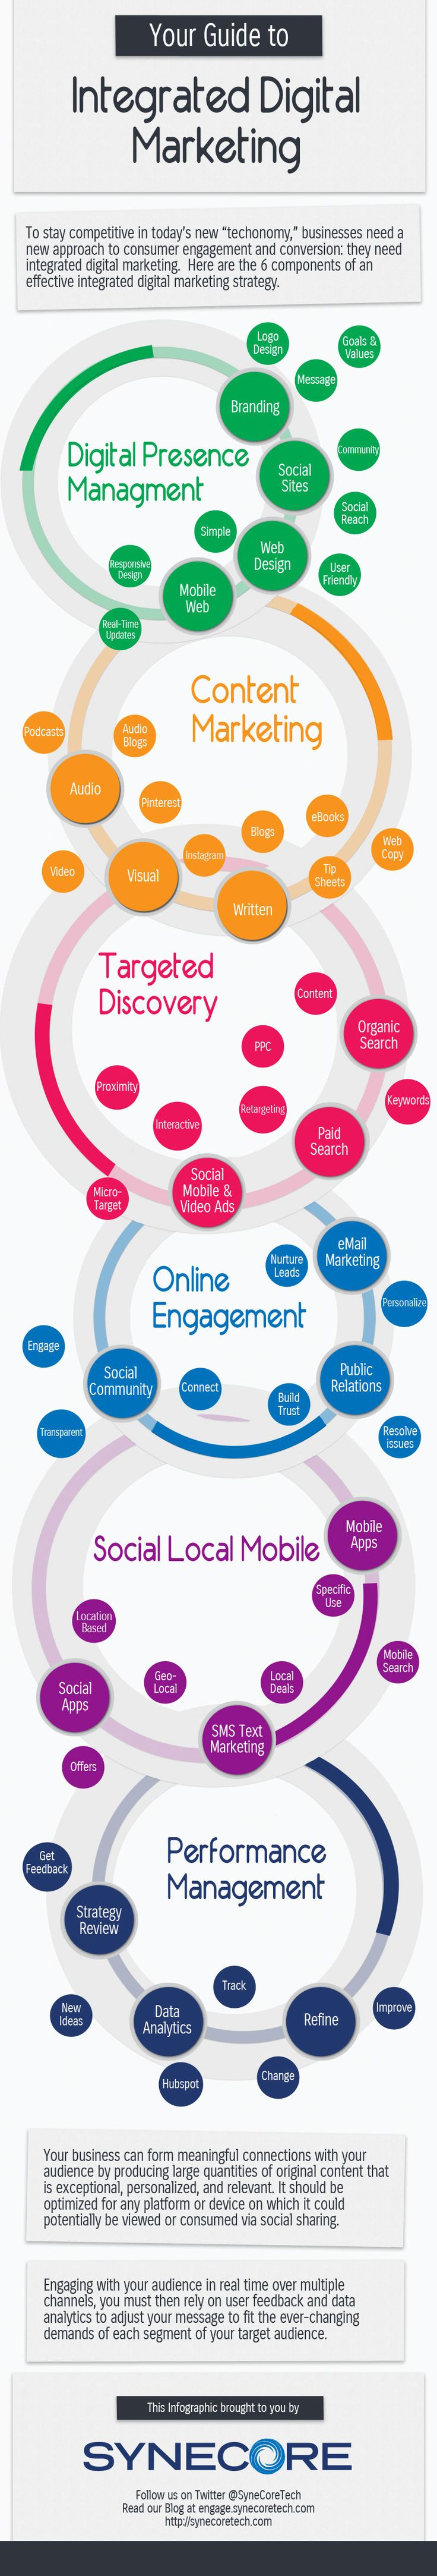 What Are The 6 Components Of An Effective Integrated Digital Marketing Strategy?  463ac589439b407f7cea8d7abdc4d8d5